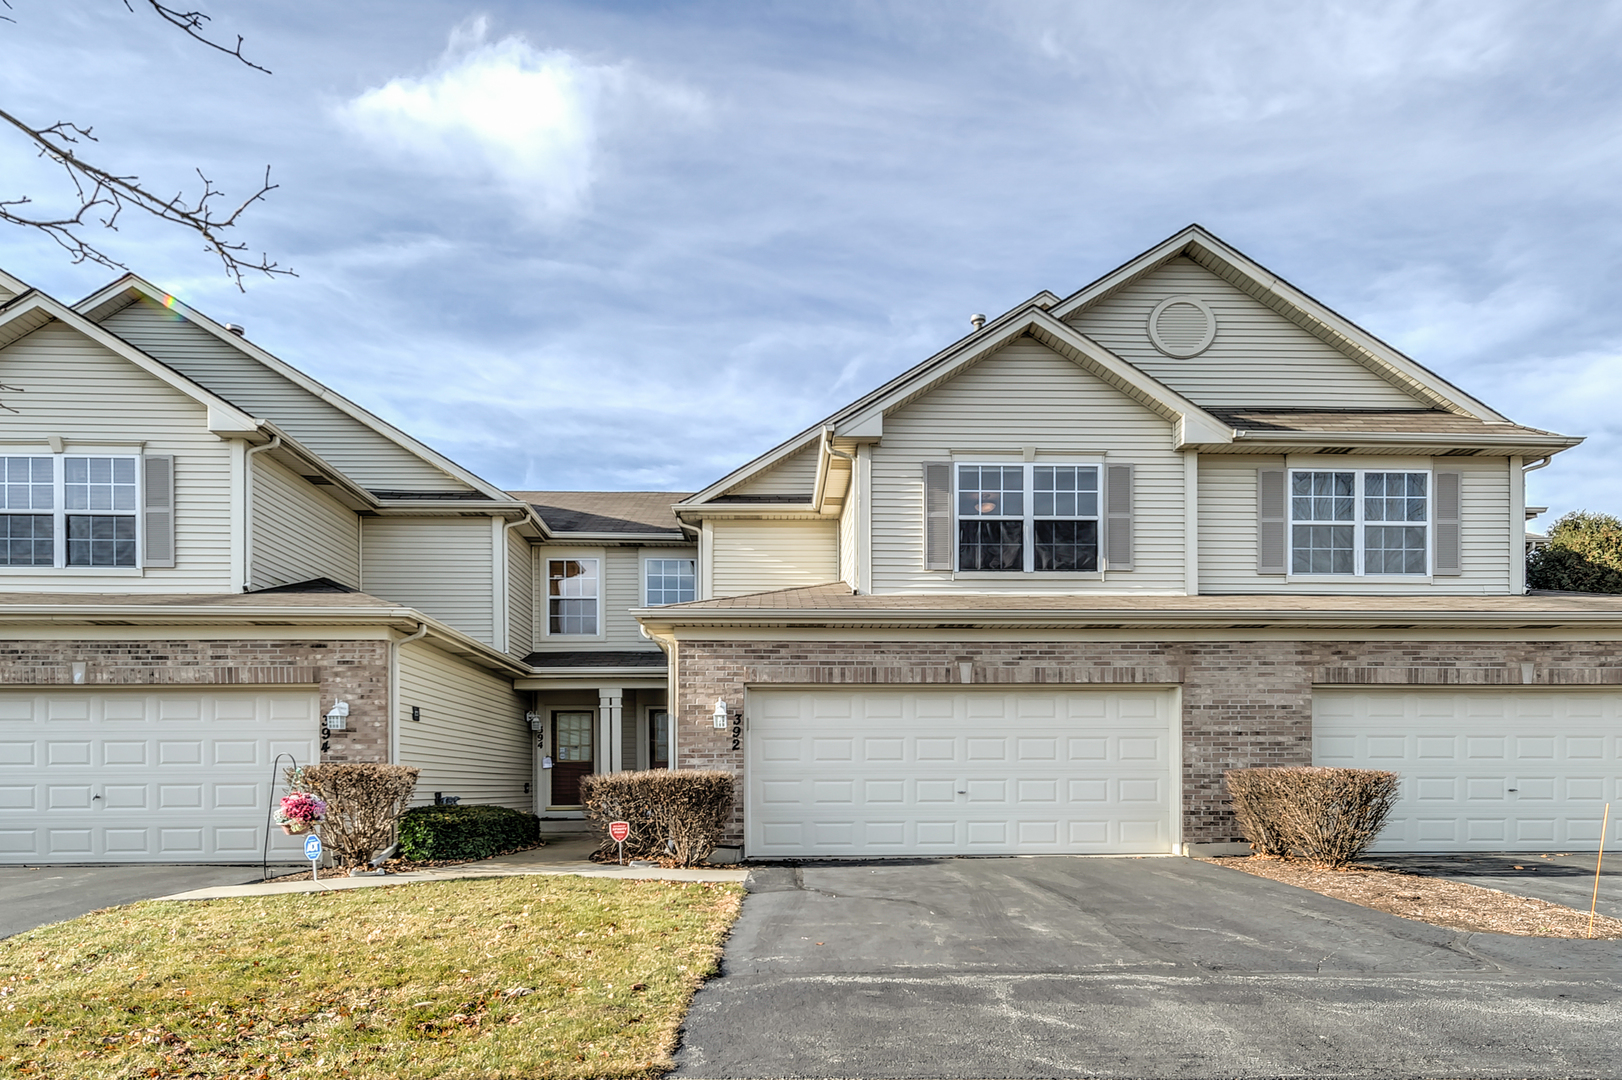 392 Littleton Trail, Elgin in Cook County, IL 60120 Home for Sale